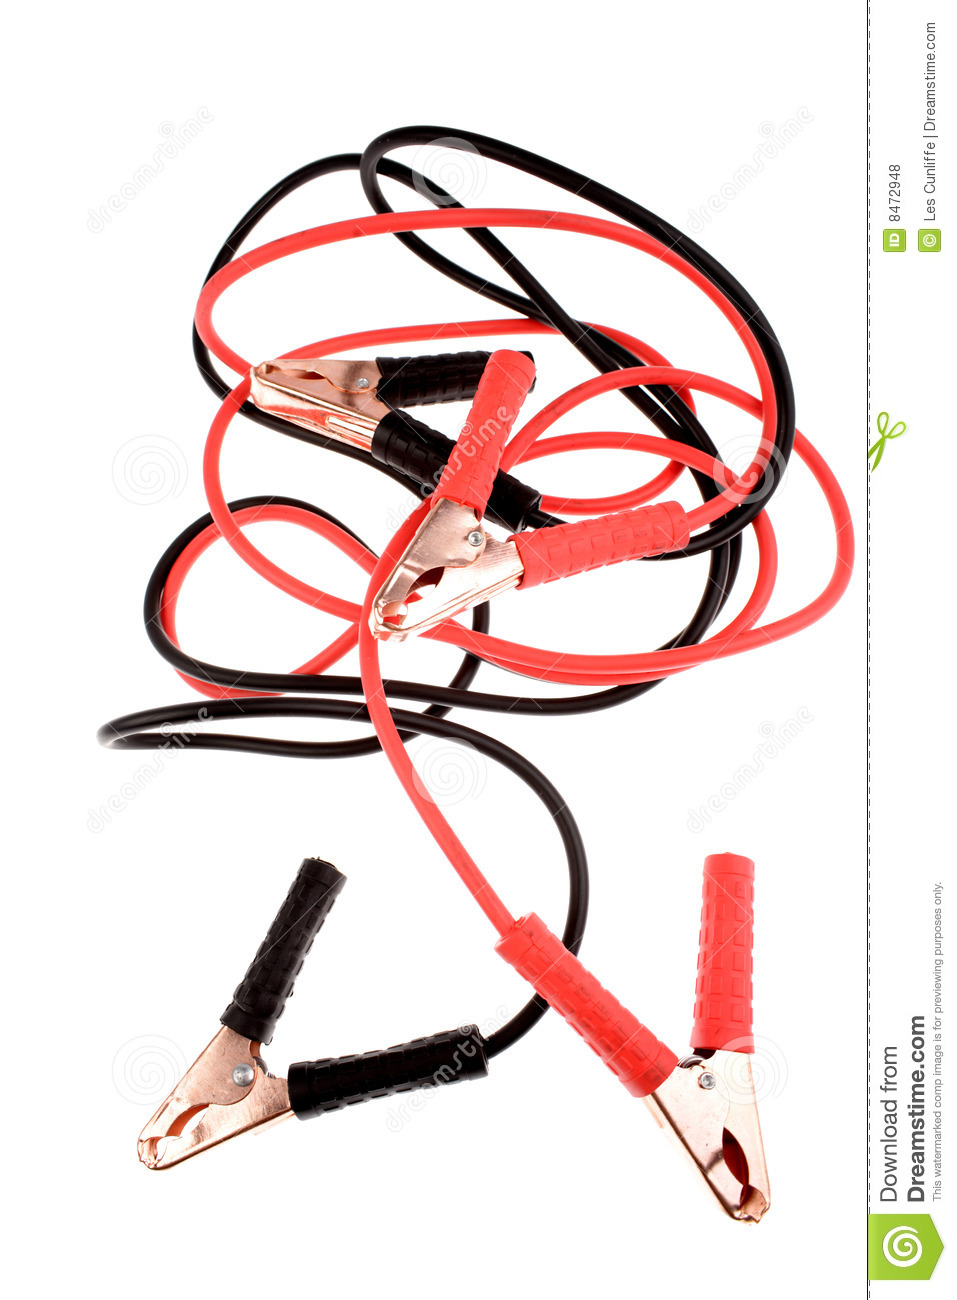 Jumper Cable Background : Jumper cables royalty free stock photos image